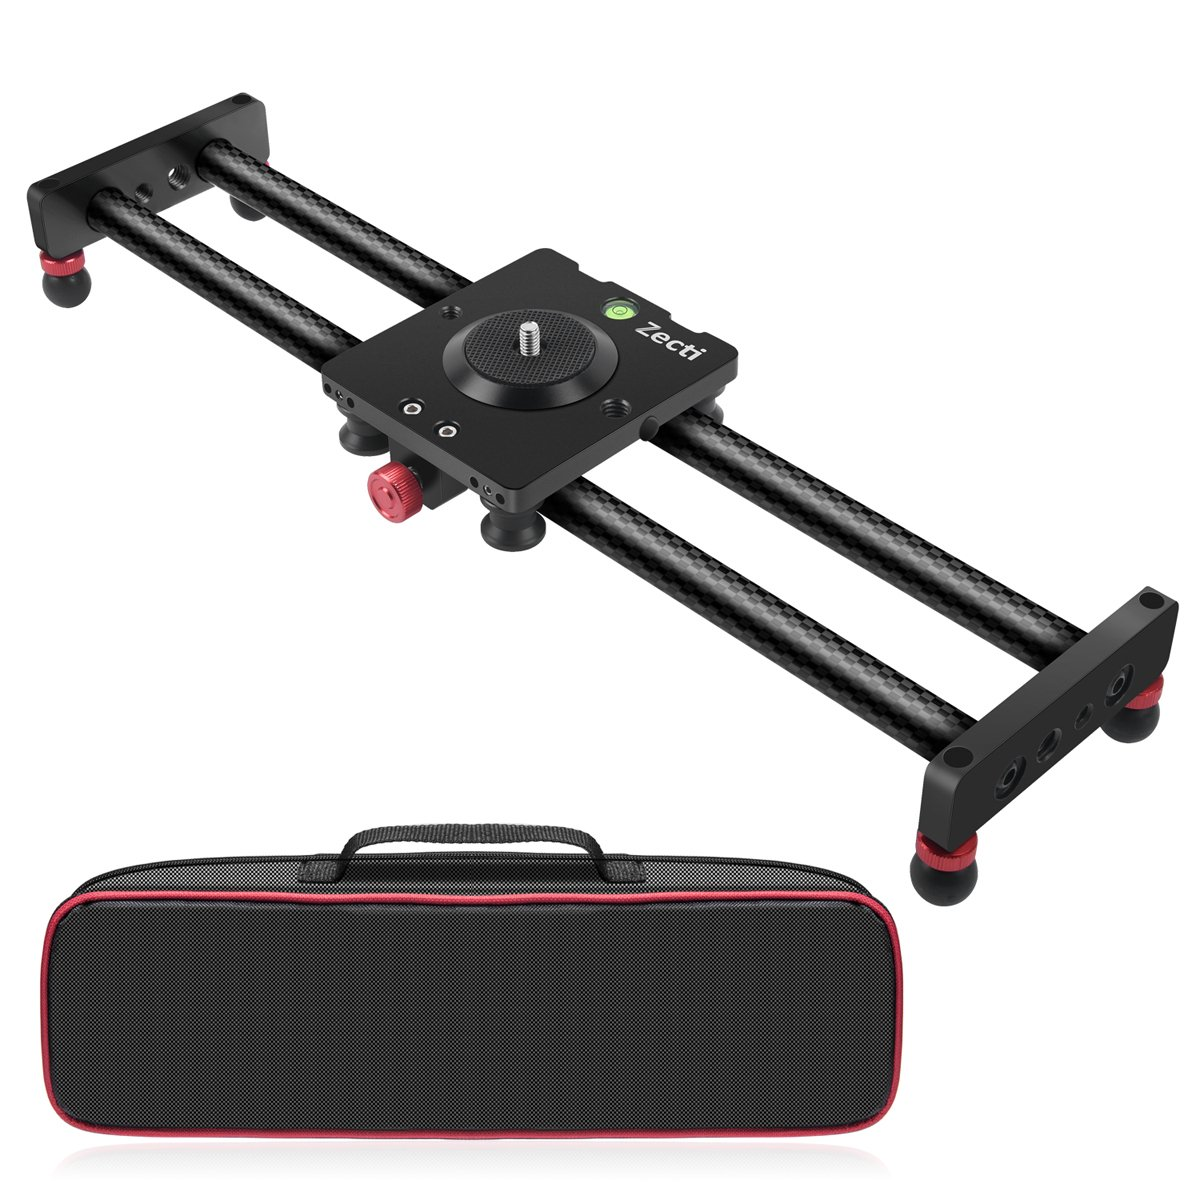 """Zecti Camera Slider Carbon Fiber Dolly Rail, 15.7""""/40cm Portable Dolly Track with 4 Bearings for Smartphone Nikon Canon Sony Camera 12lbs Loading"""